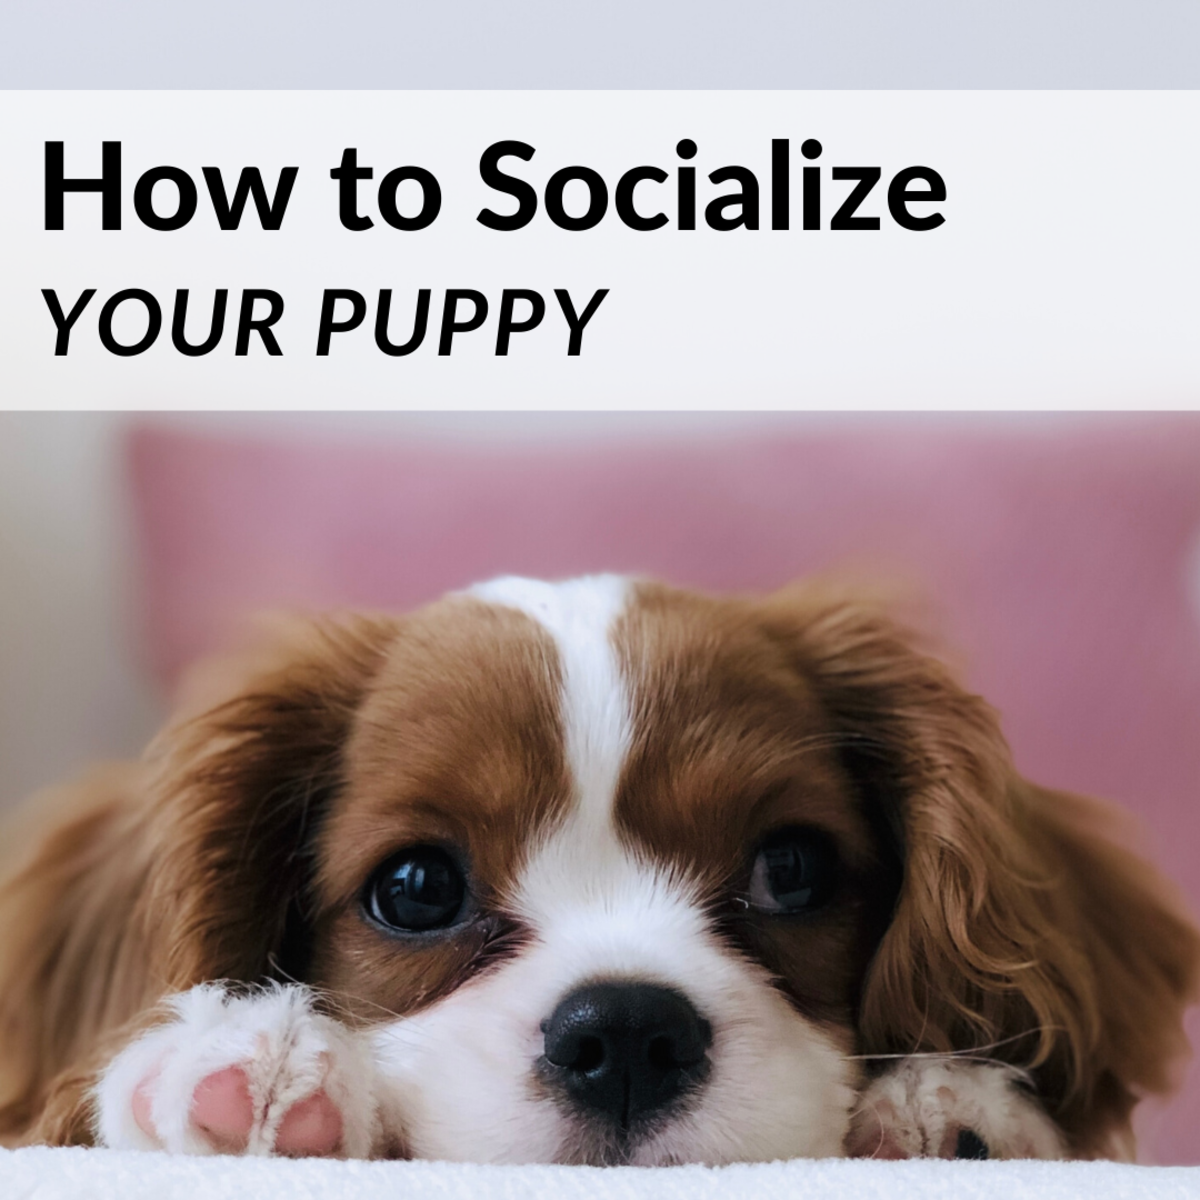 How to Socialize and Train Your Puppy for Beginners